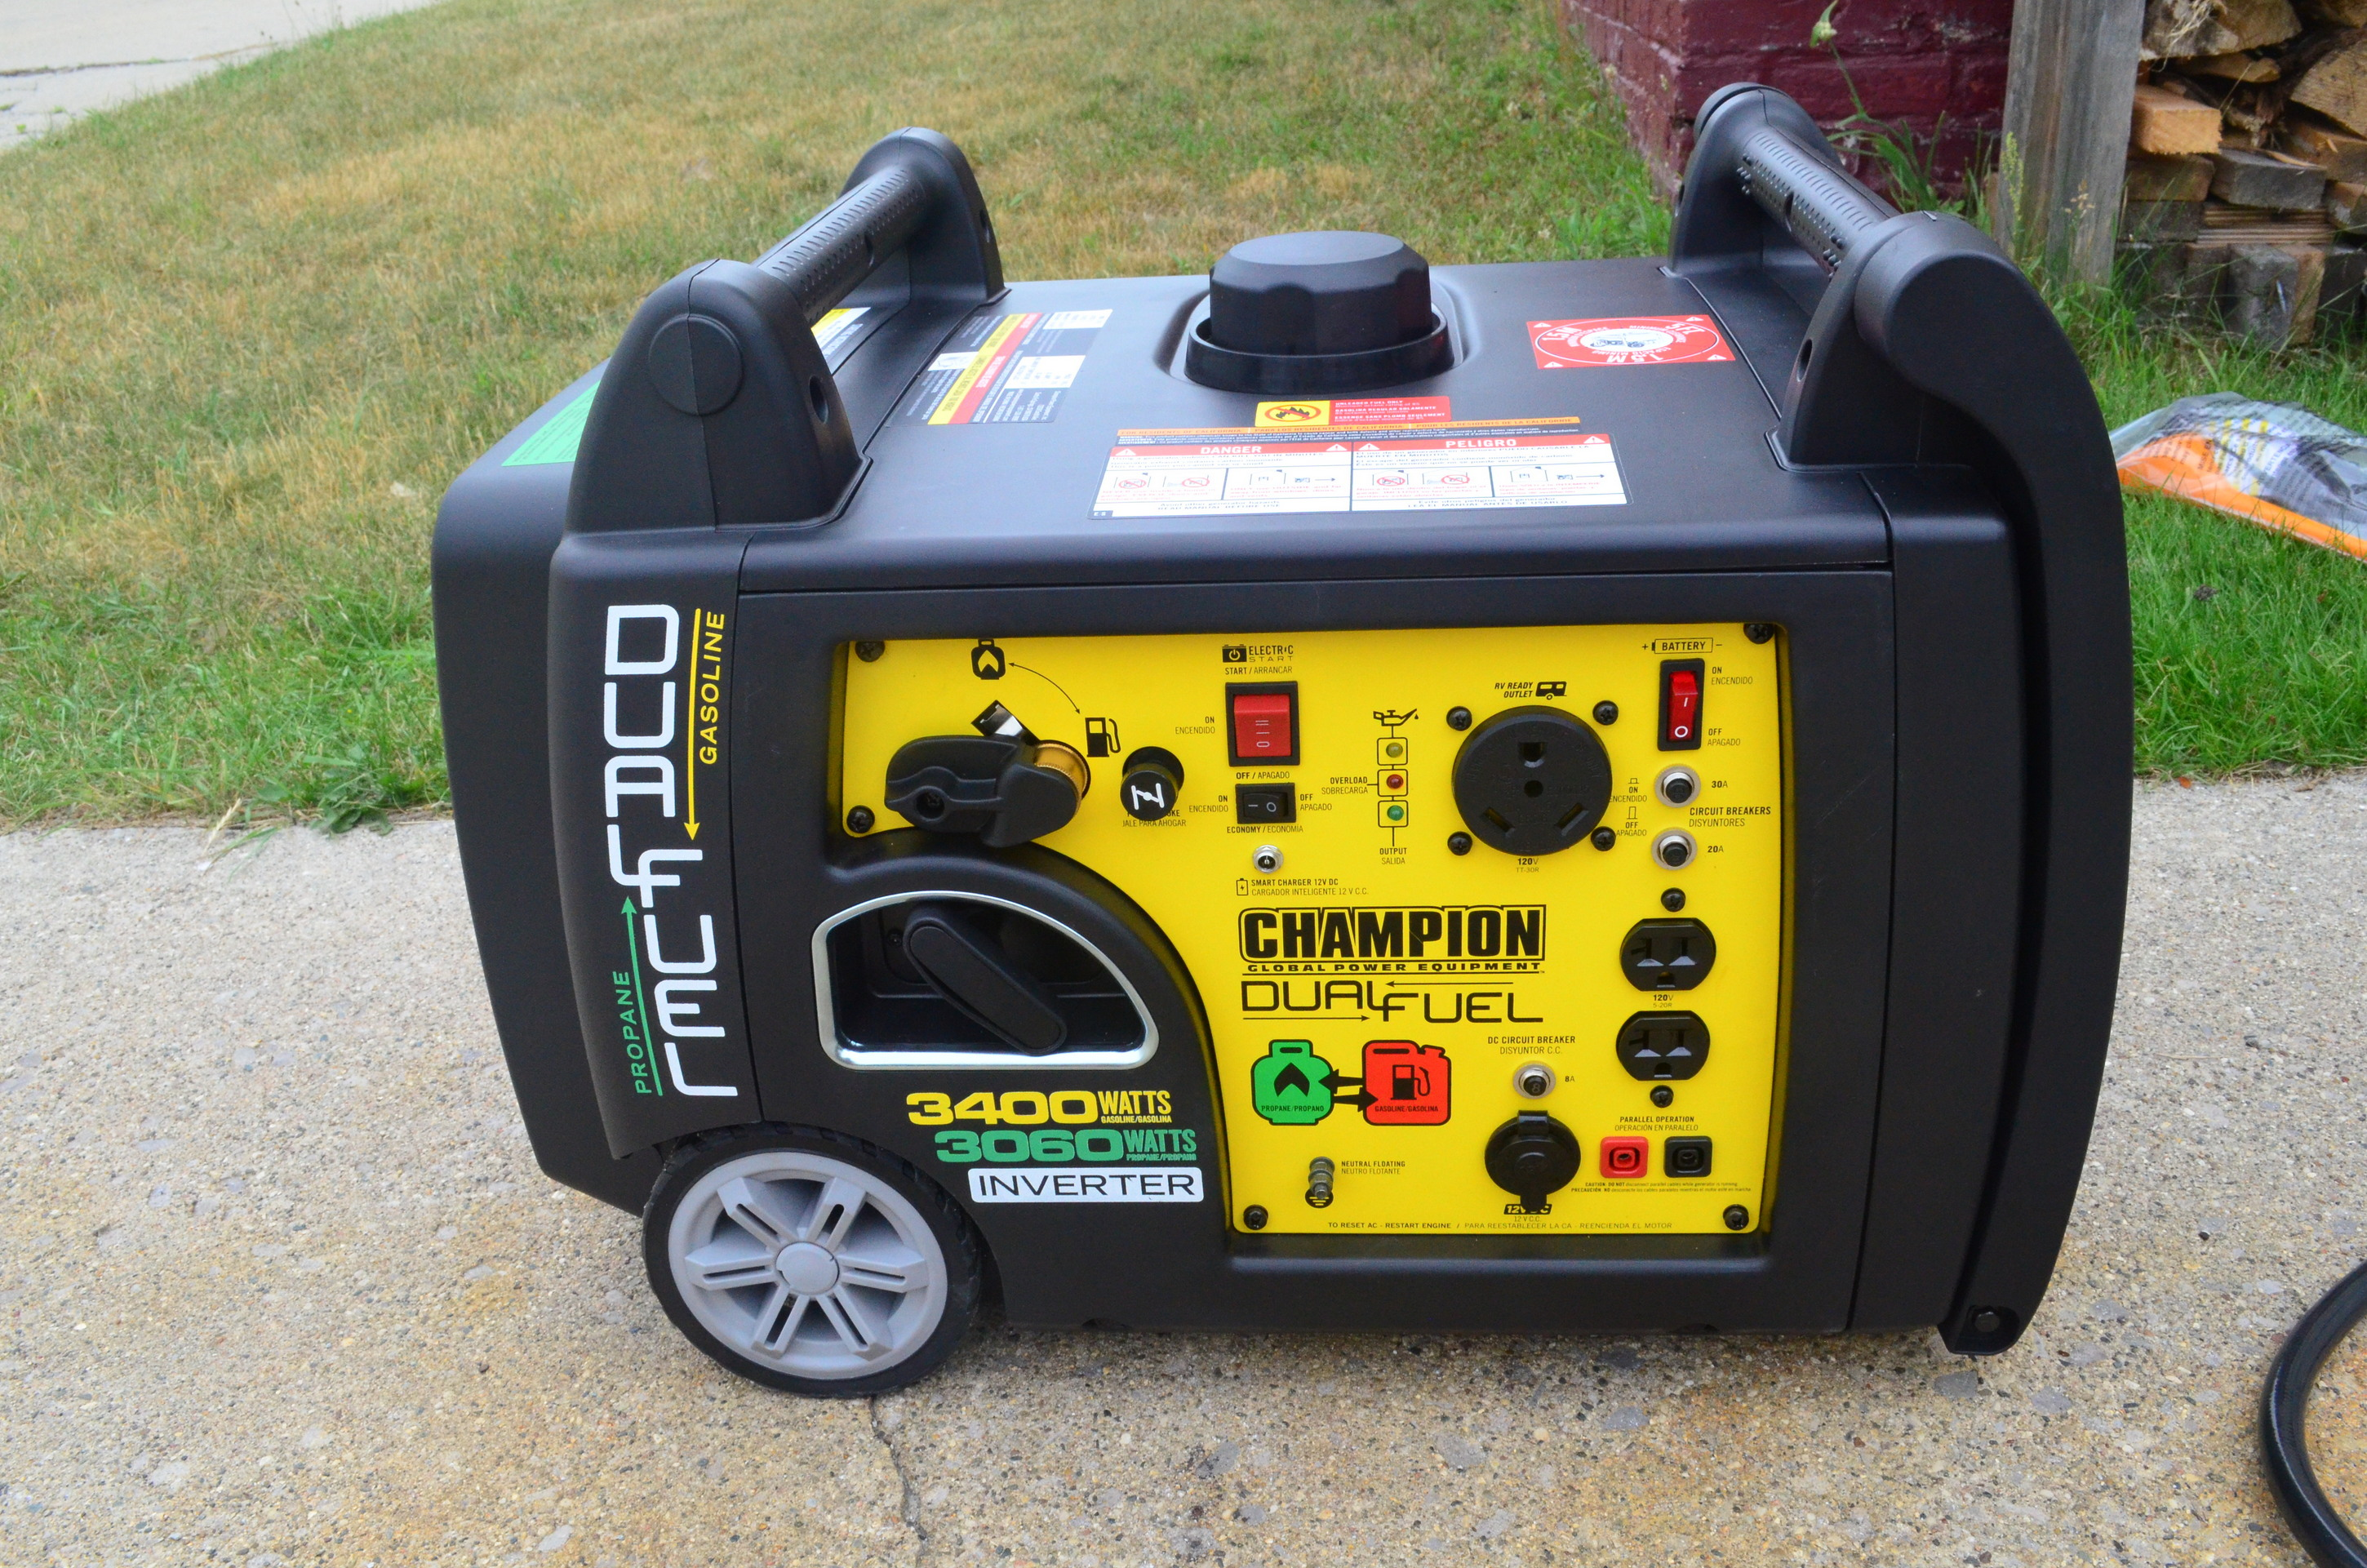 Champion Inverter Generator Vs Honda Which One Is The Practical